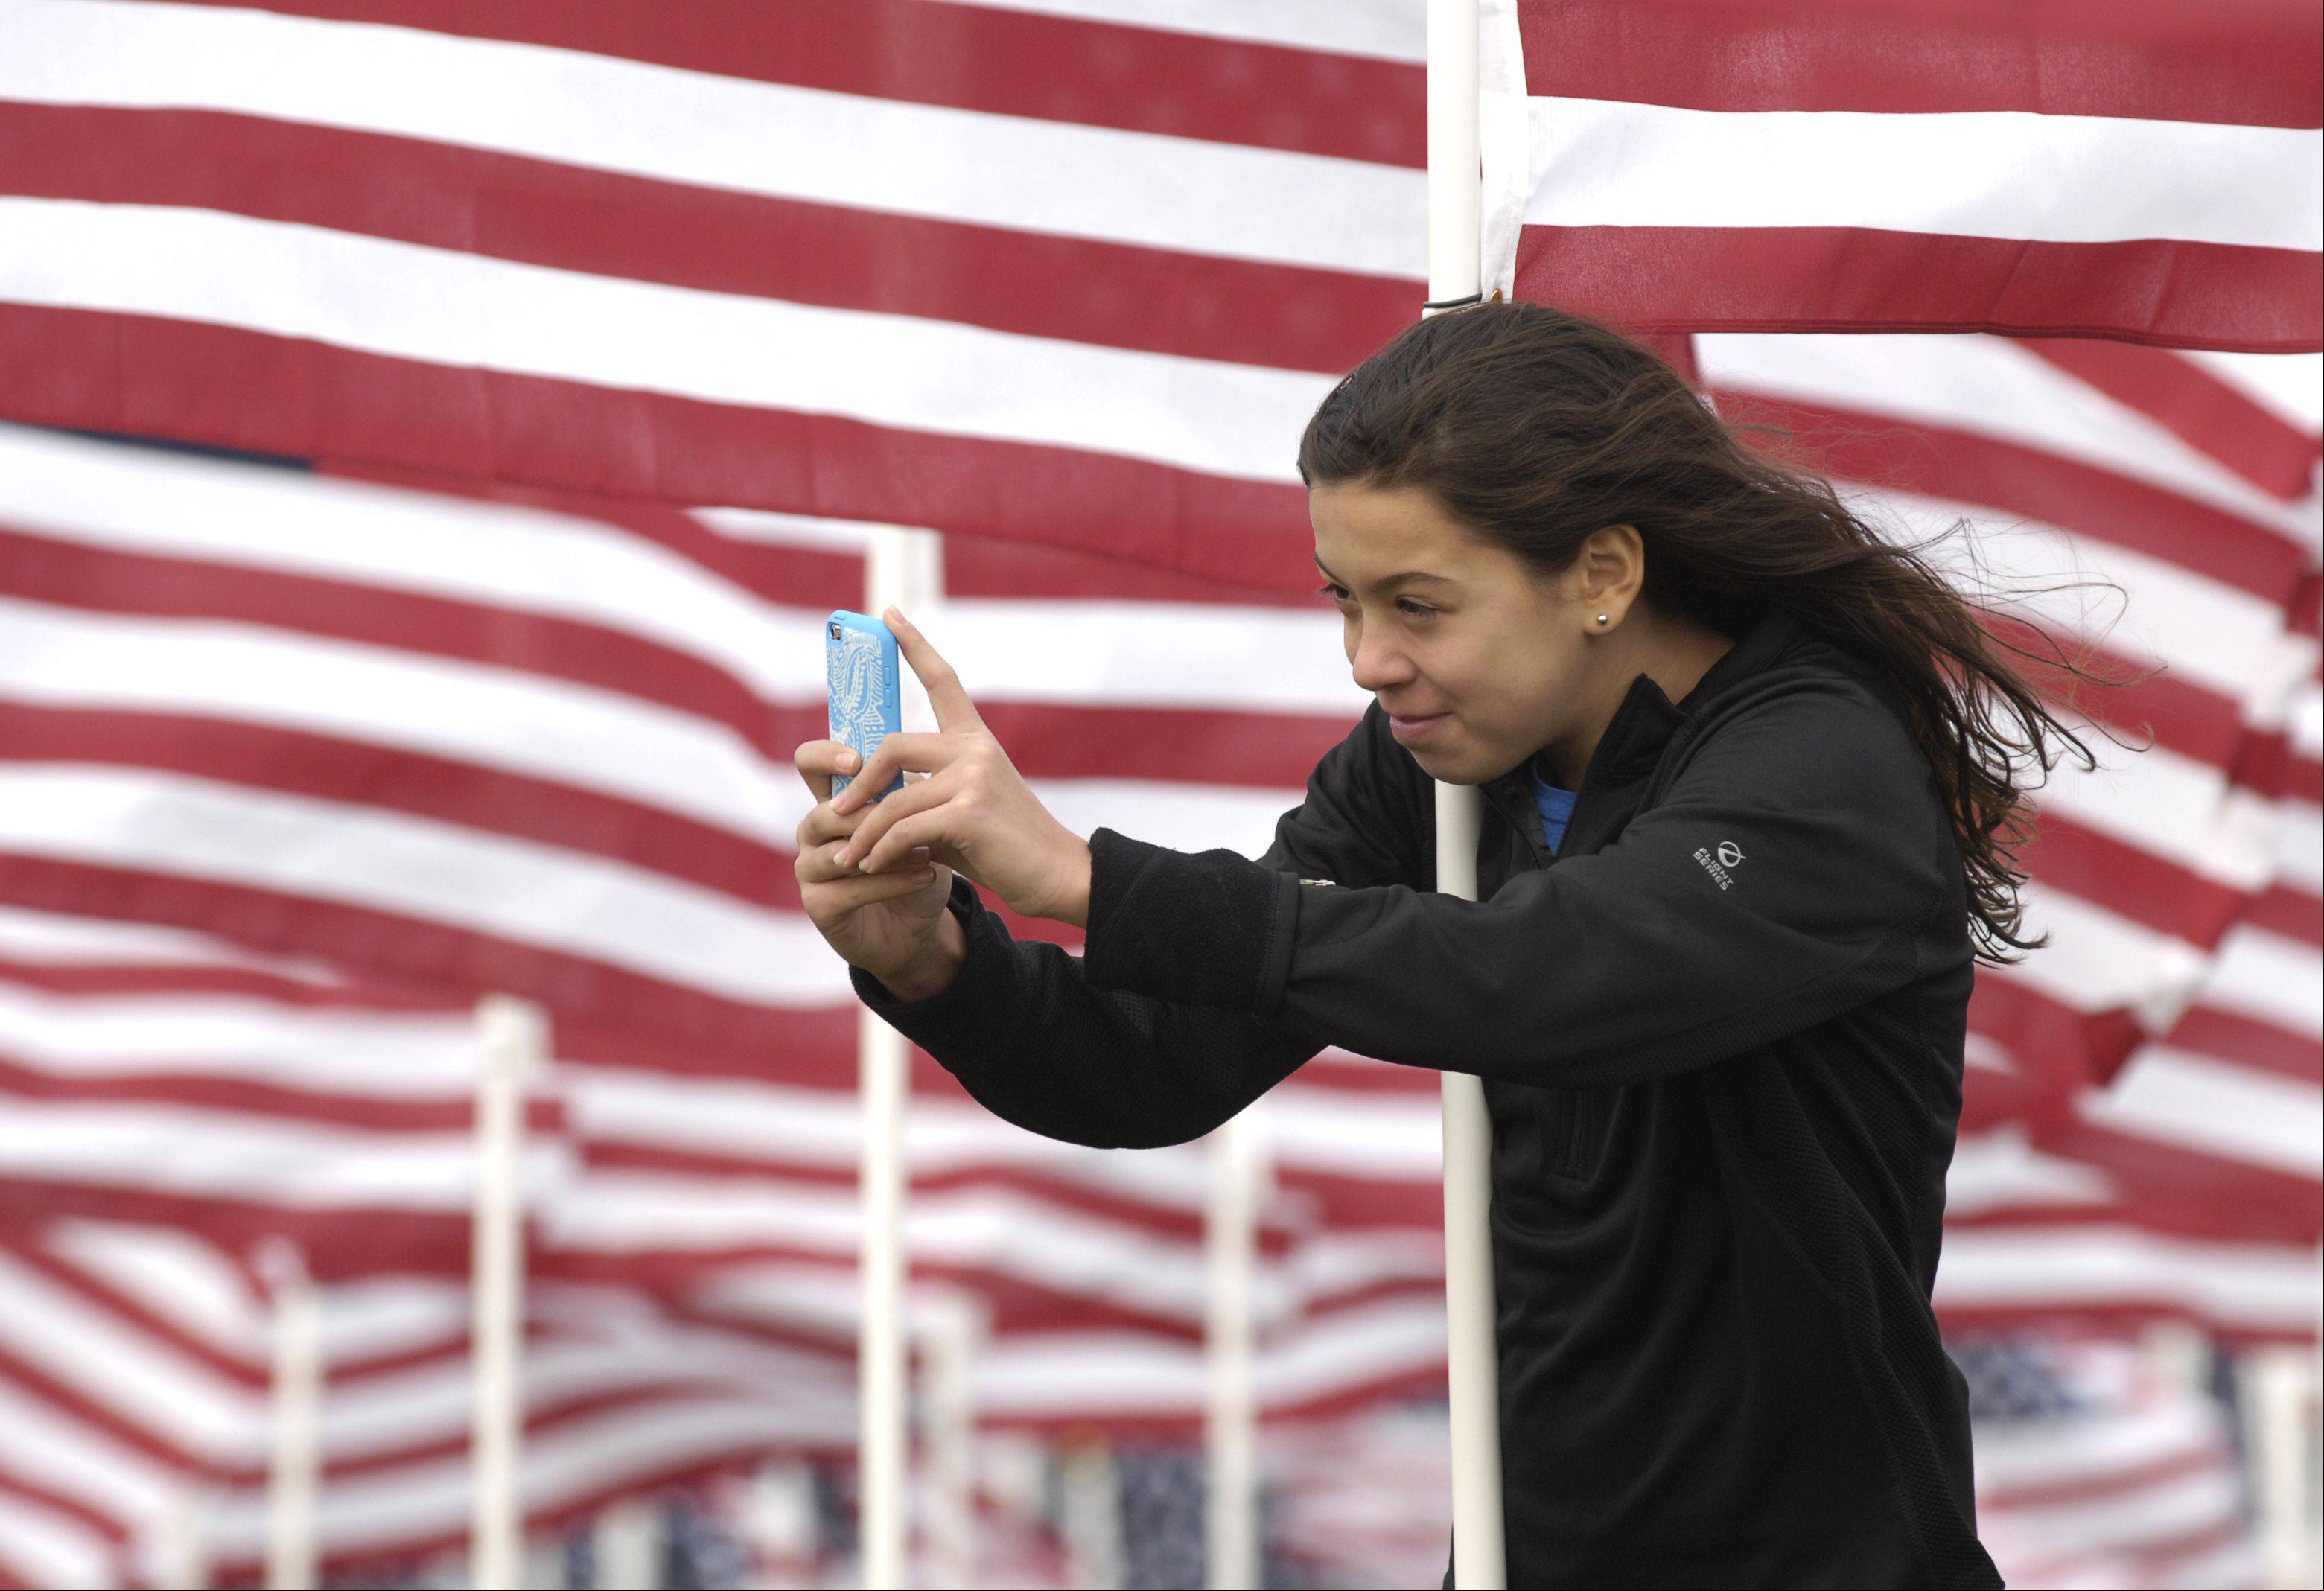 Alexis Davila, 12 of Naperville braces herself against a flagpole as she photographs the Naperville Healing Field on Rotary Hill, Sunday.